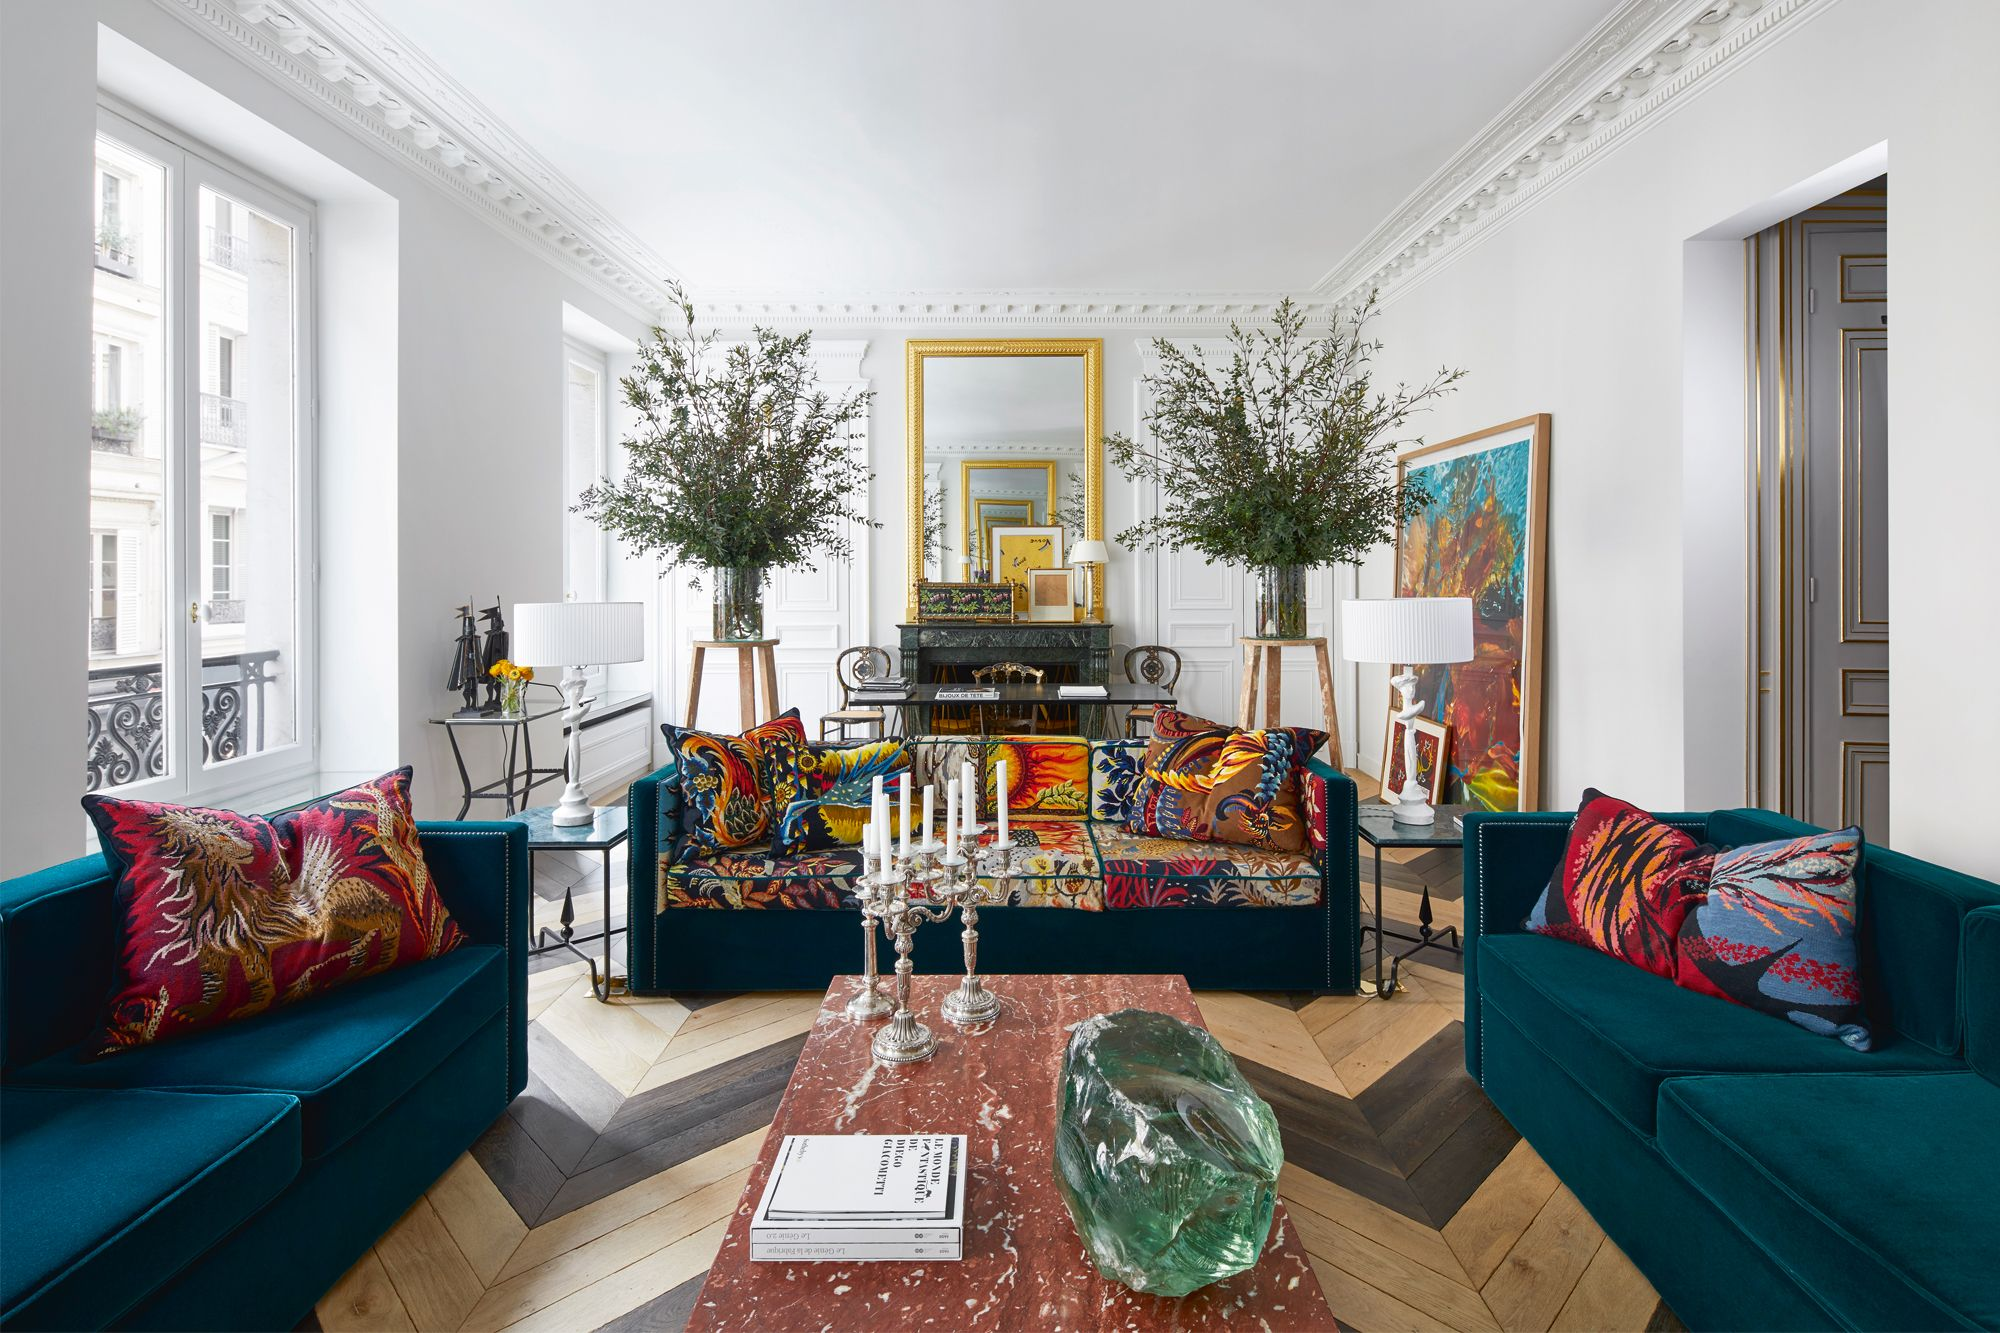 A large painting by Gilles Bensimon echoes the hues on the colourful custom velvet sofas and accent cushions